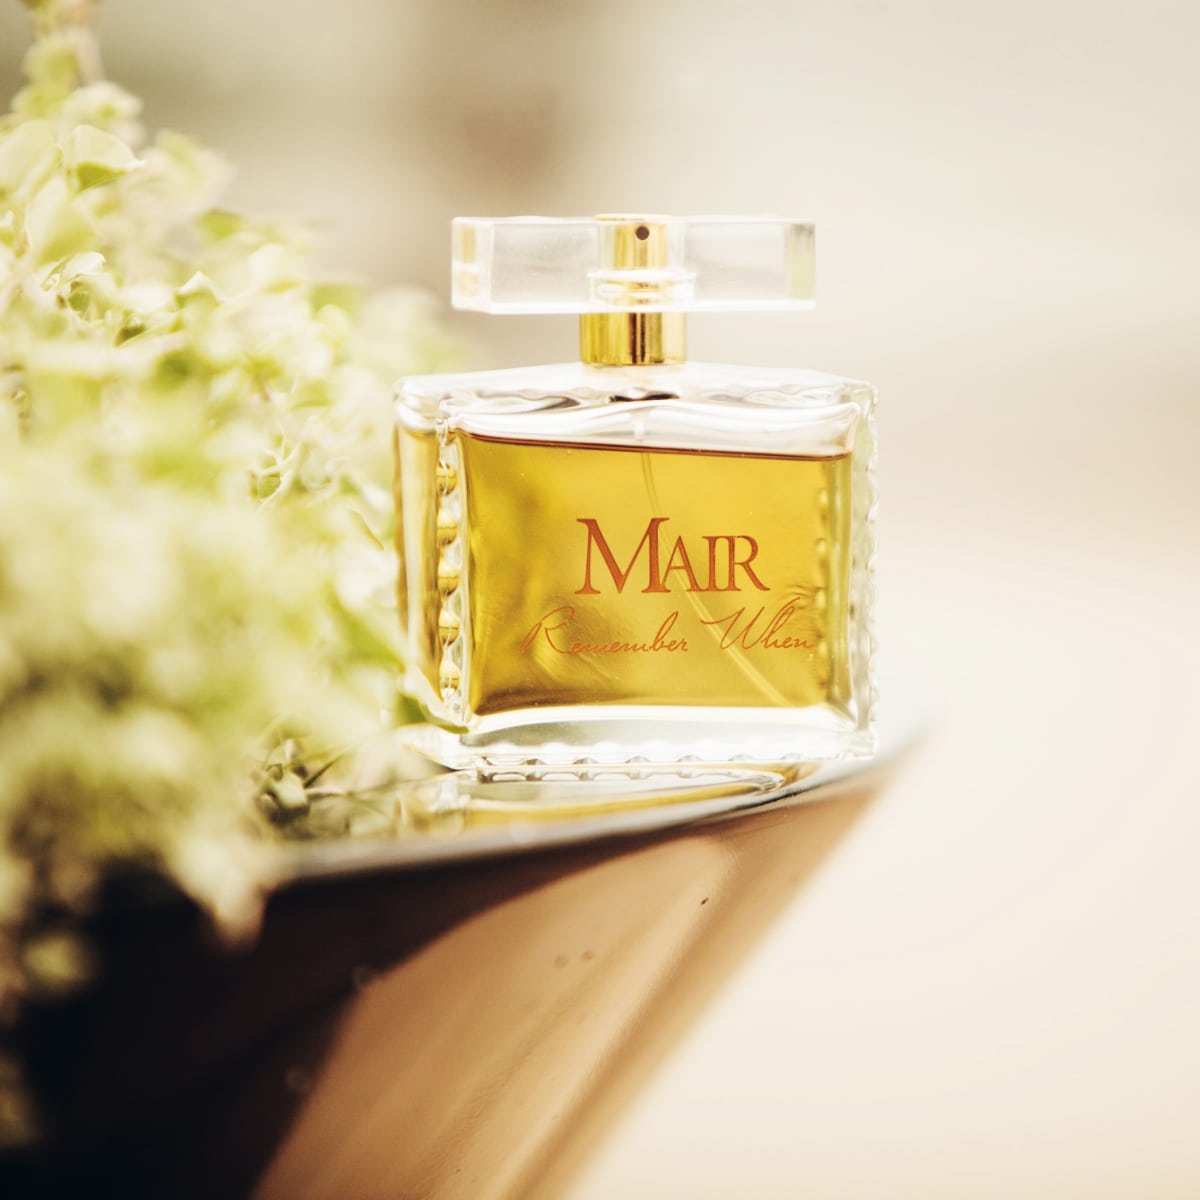 Mair Fragrance bottle photo 2